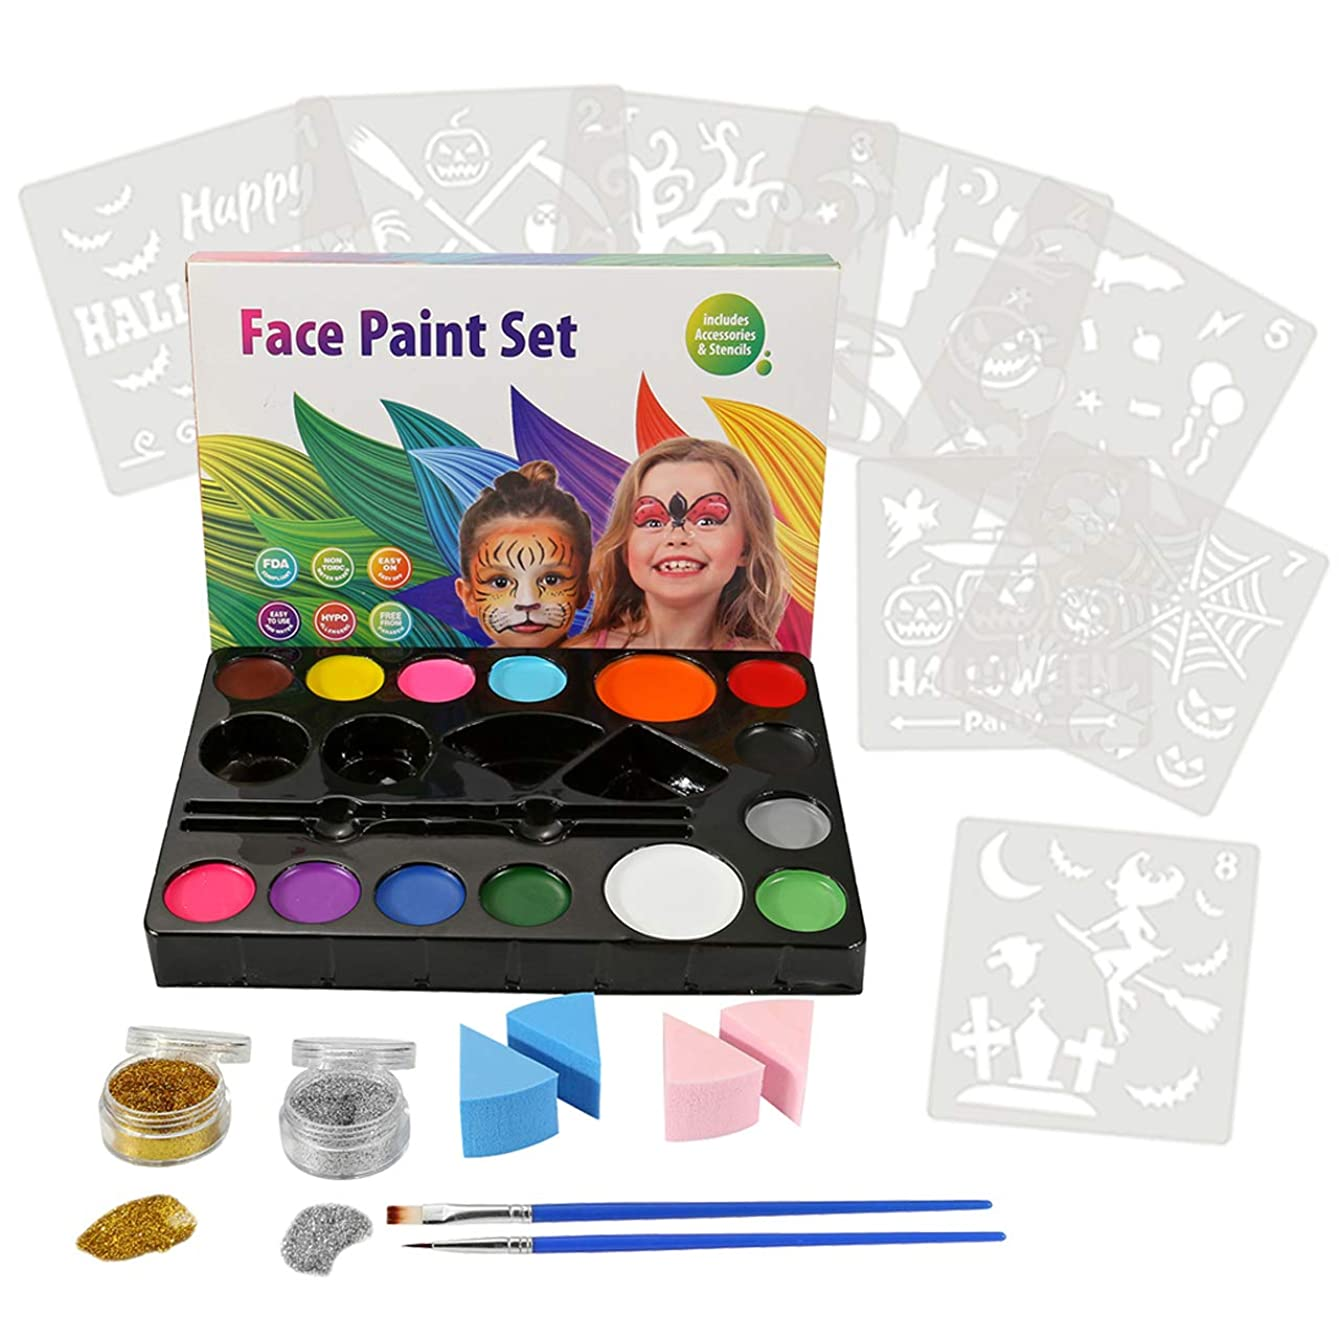 CCbeauty Art Face Painting Kit for Kids Adults, 14 Colors Professional Face & Body Paints,8 Halloween Pack Stencils 2 Brushes 4 Sponges 2 Glitters usgaht313164